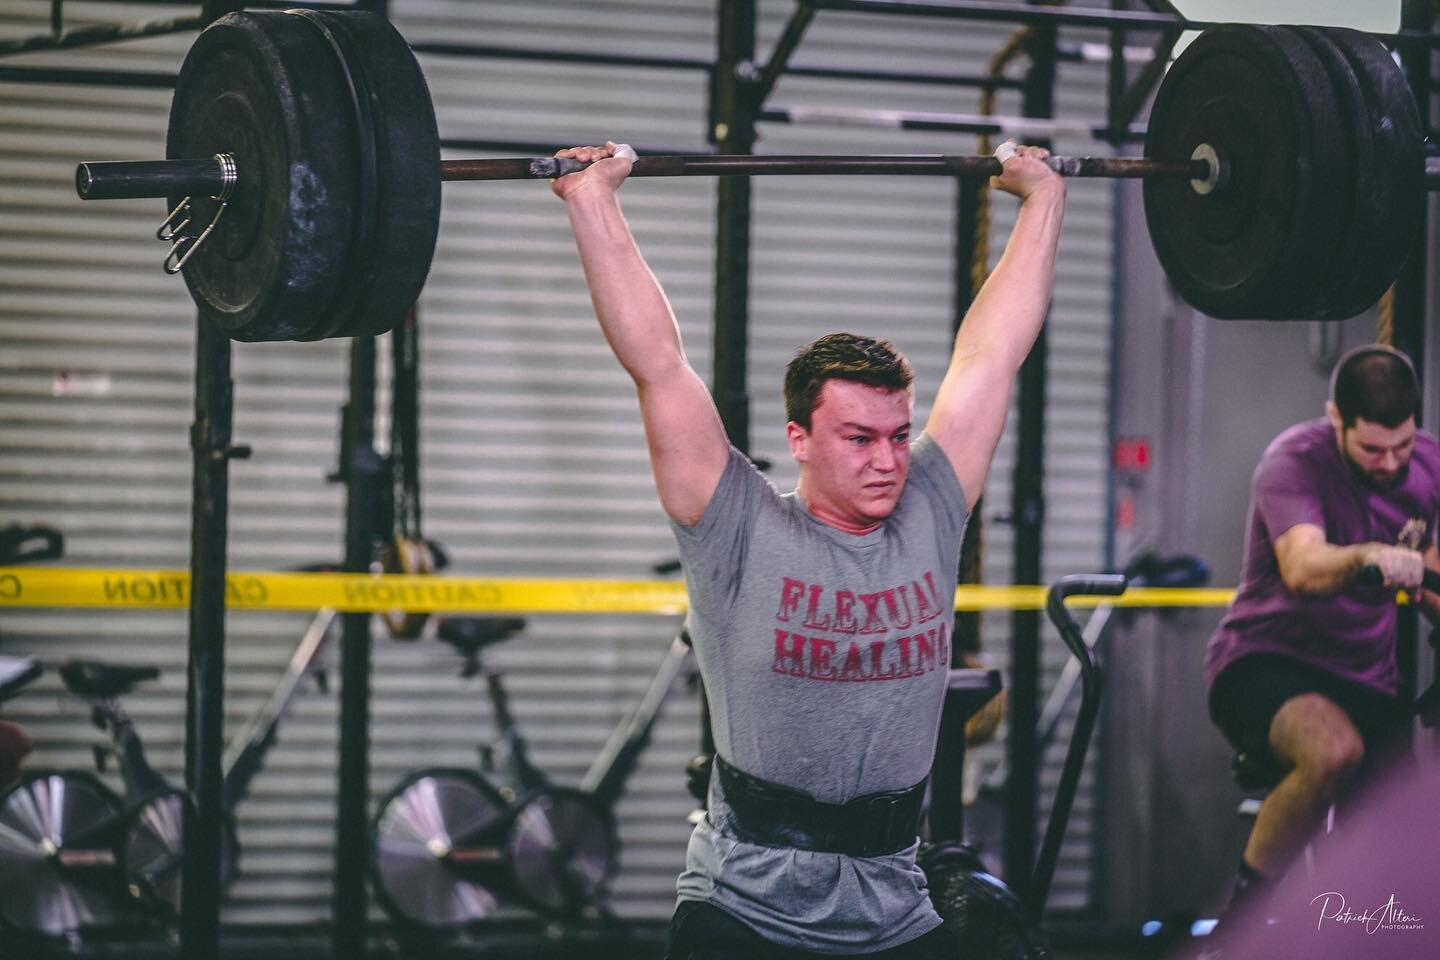 Cole Kiser - I started Crossfit when I was 16. Back then, it was how I trained for the upcoming baseball season. Now, it translates to every aspect of my life. Not only has it taught me discipline and self-control, but has led to many great friendships. I look forward to giving the gift of knowledge and helping you achieve your goals, while also having one hell of a time. Now lets get to work.